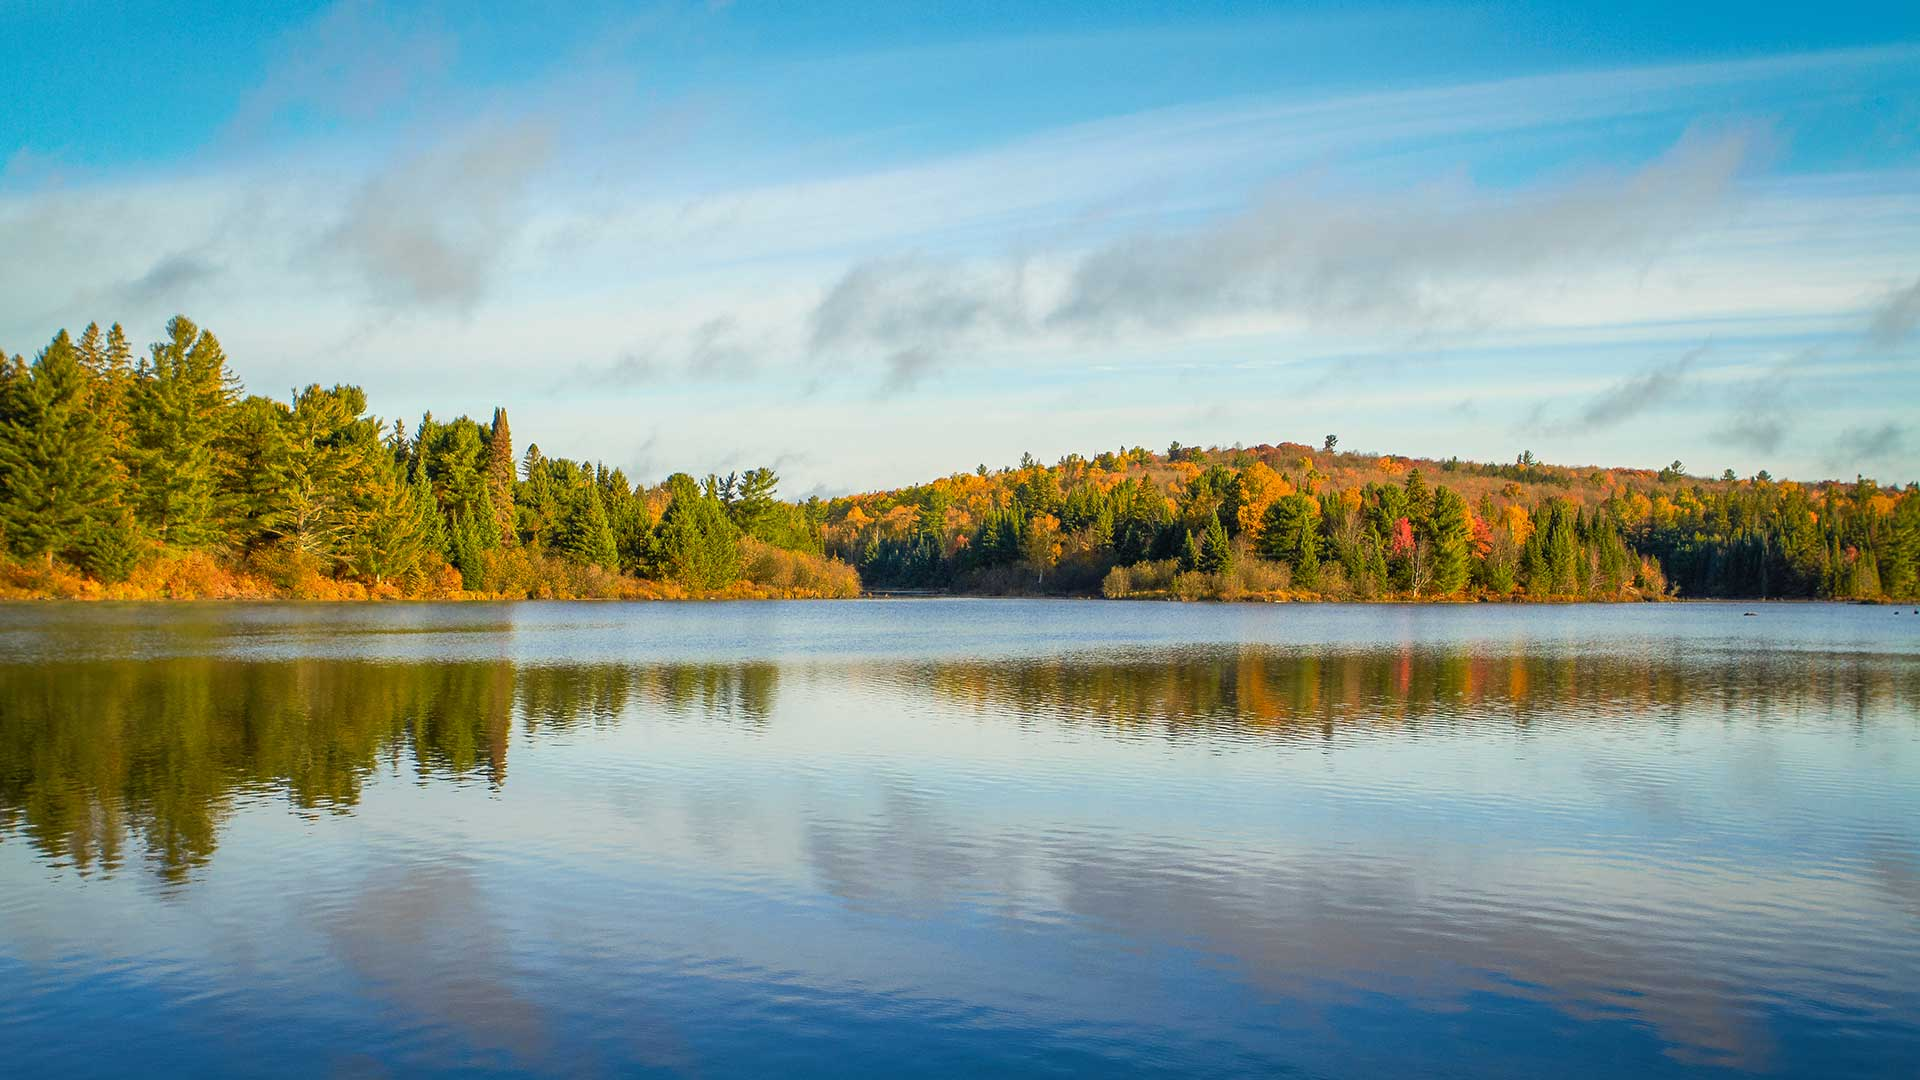 Panorama to illustrate dating in sioux lookout